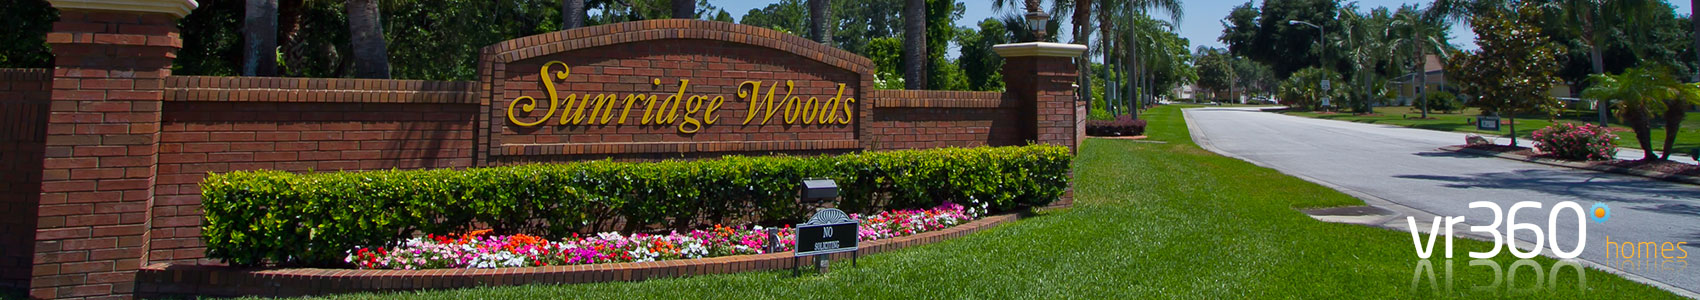 Sunridge Woods Villas and Vacation Rentals in Davenport Florida